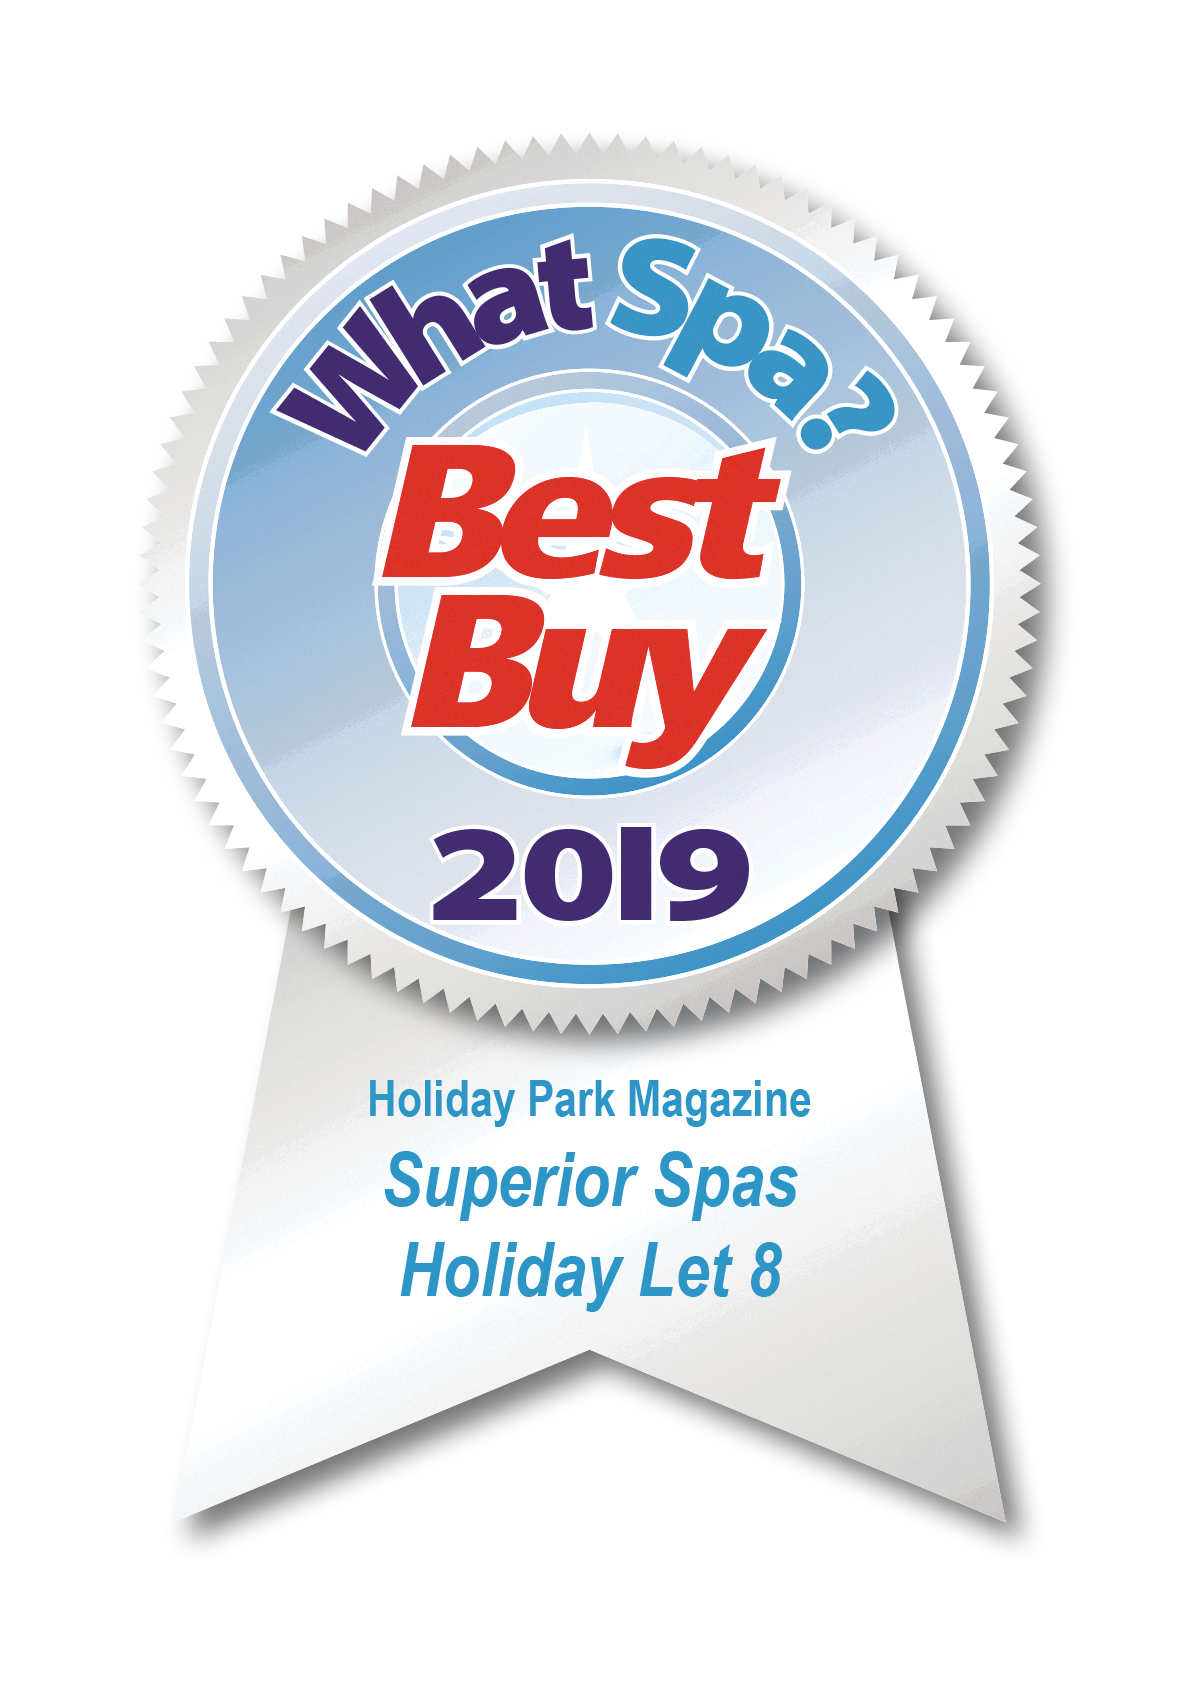 What Spa Award 2019 - Holiday Let 8